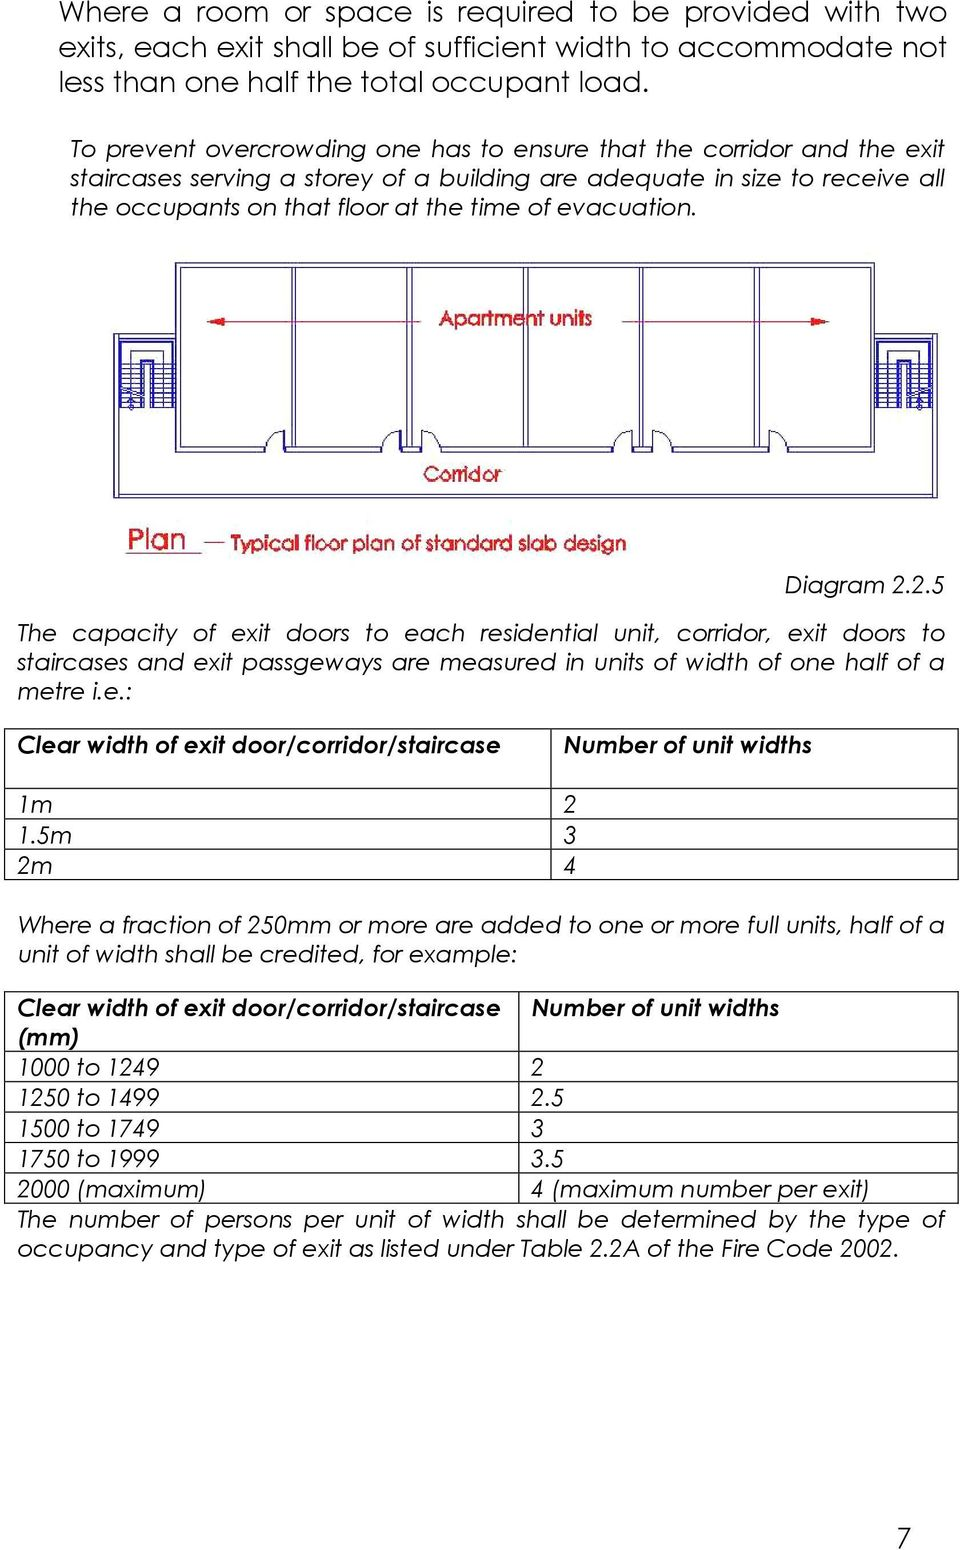 medium resolution of diagram 2 2 5 the capacity of exit doors to each residential unit